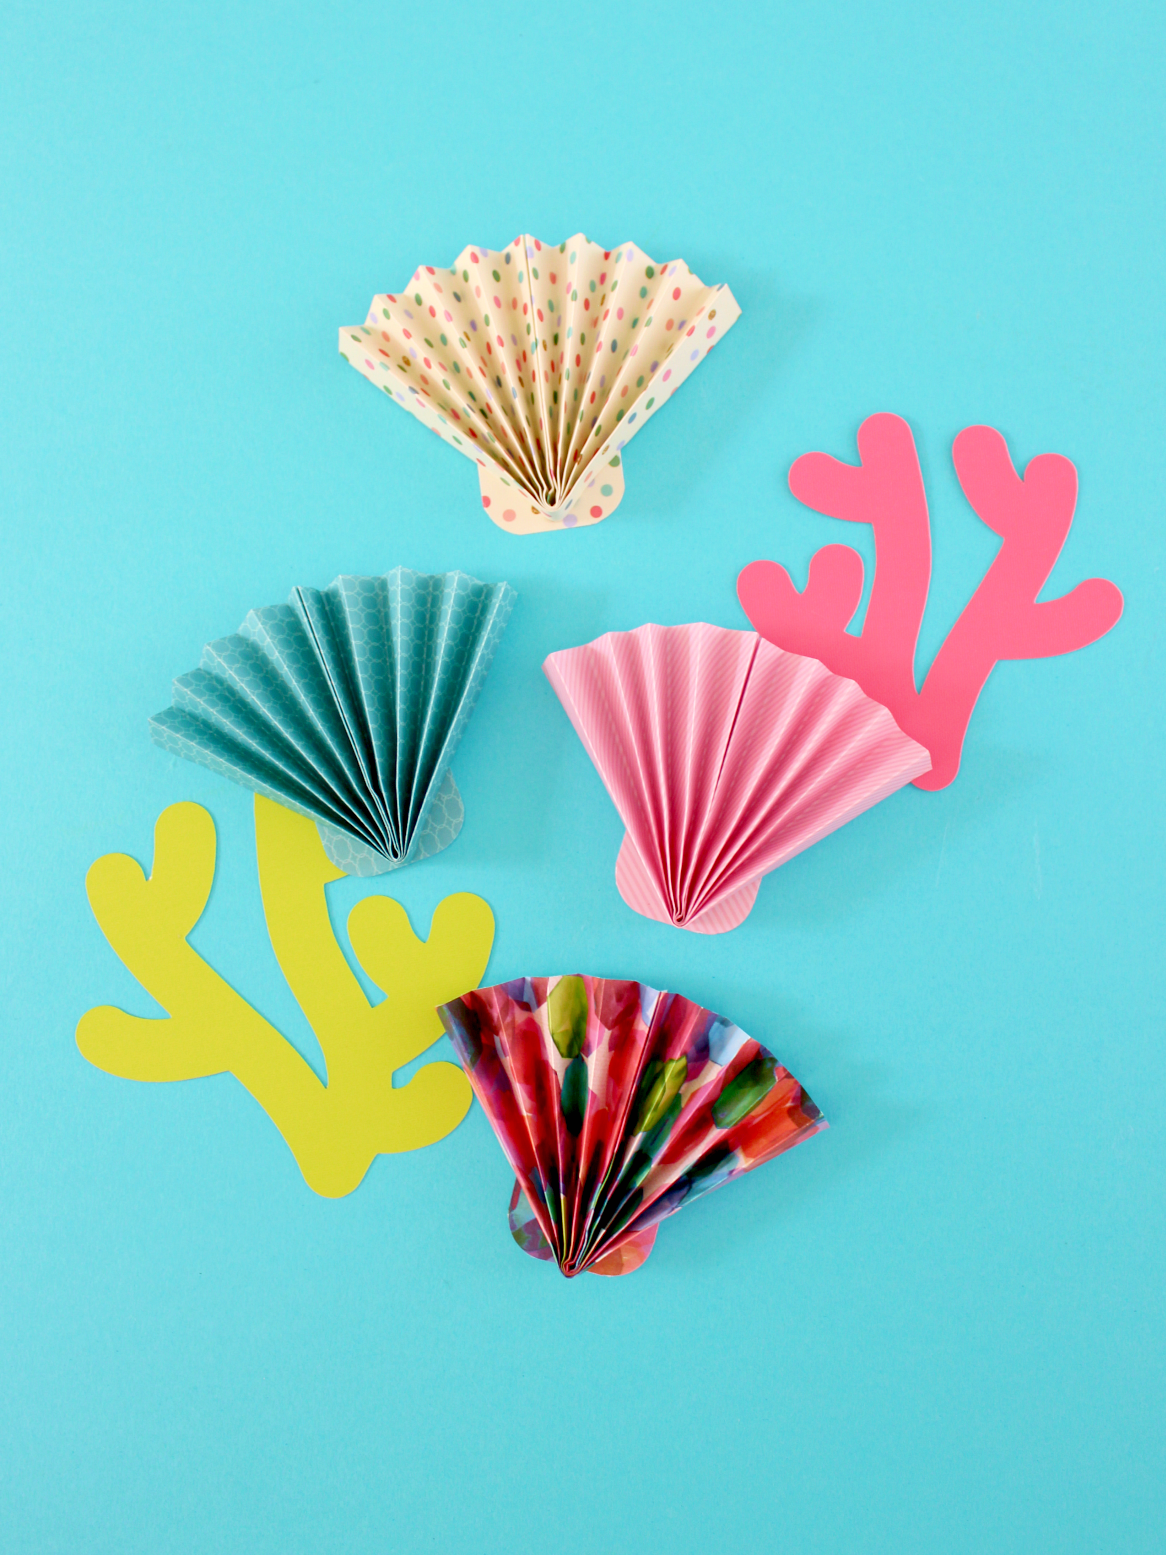 PAPER ACCORDION SEA SCALLOP (IN 5 MINUTES!)